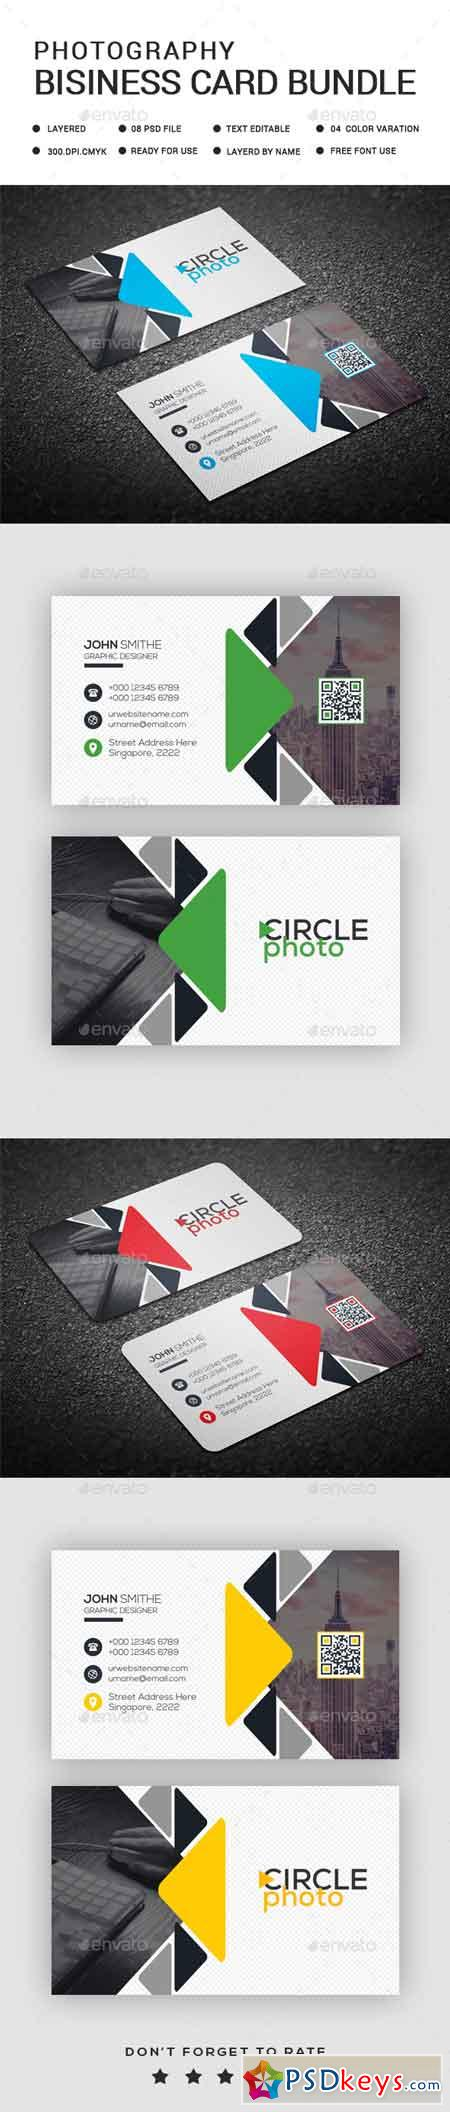 Business cards free download photoshop vector stock image via photography business card 22484393 reheart